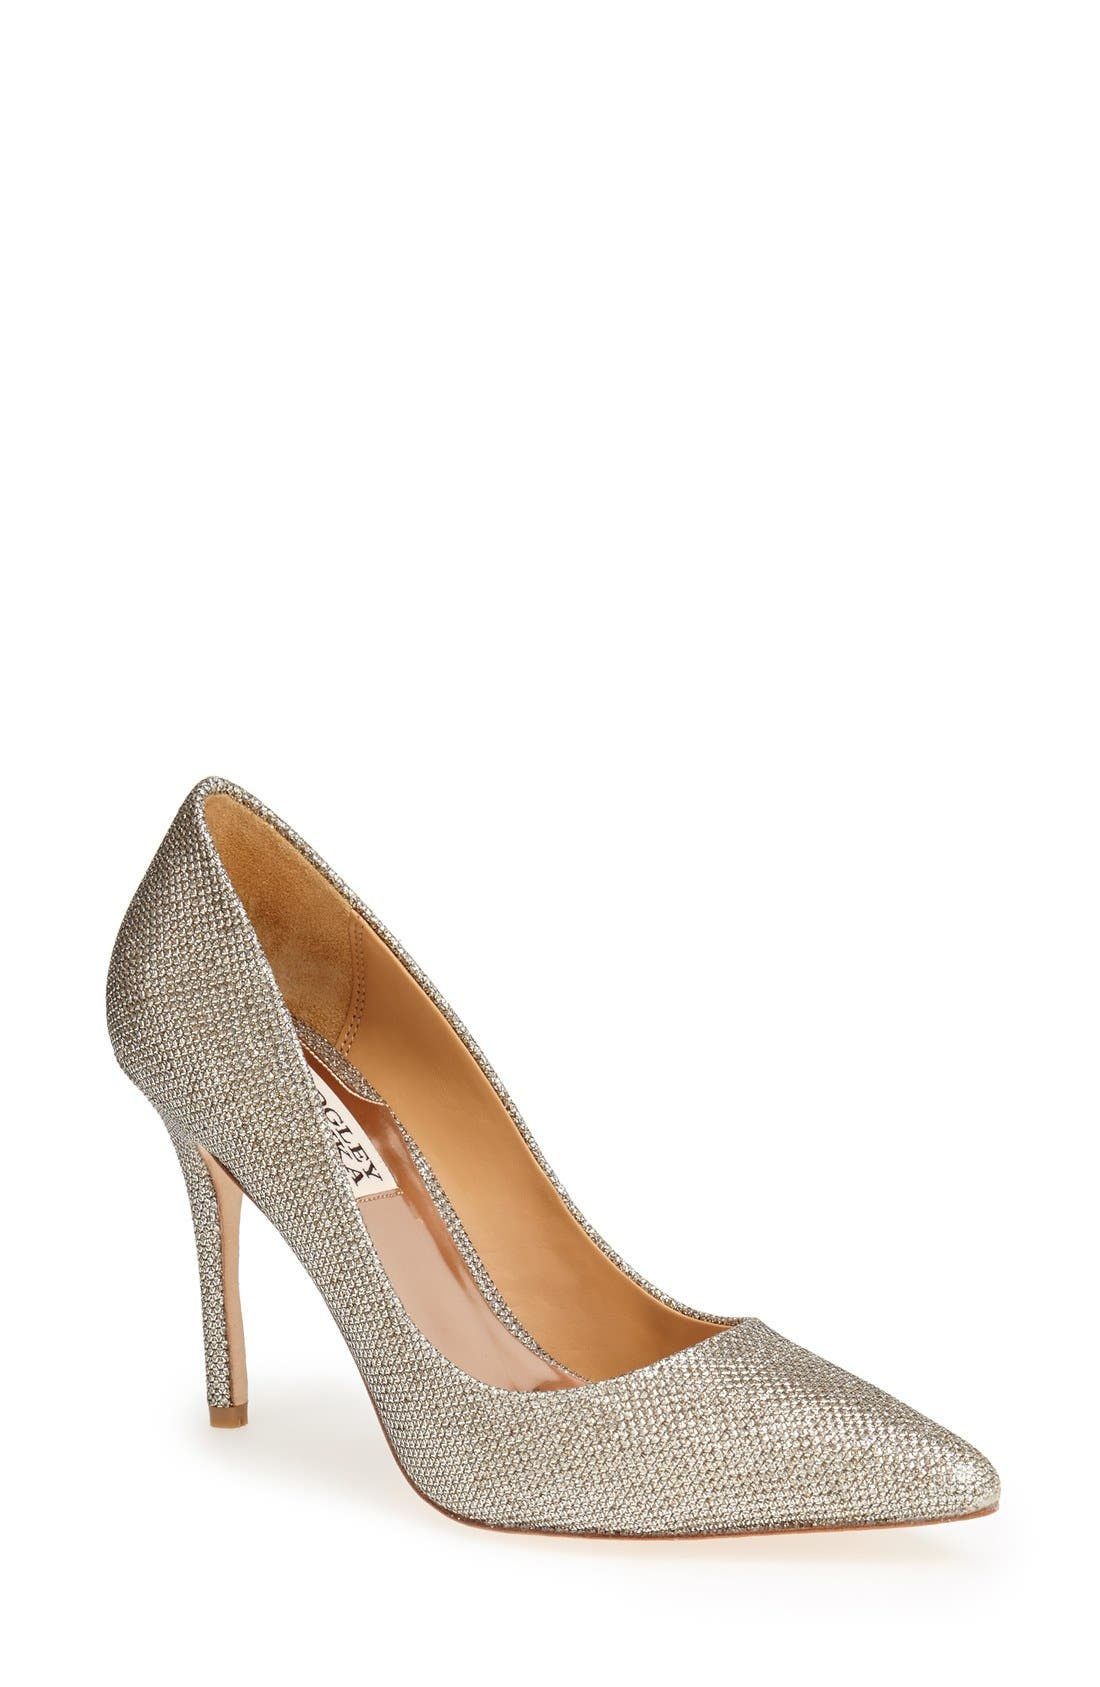 Alternate Image 1 Selected - Badgley Mischka 'Luster' Pointy Toe Pump (Women)